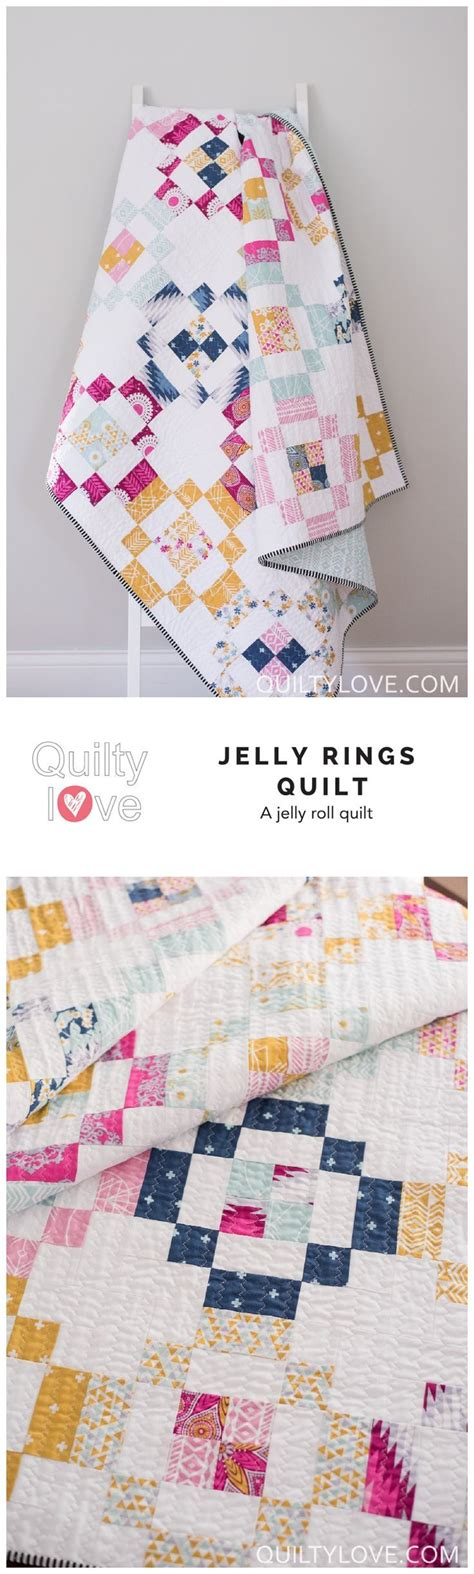 best 25 wedding quilts ideas diy wedding quilt quilt pattern and jelly